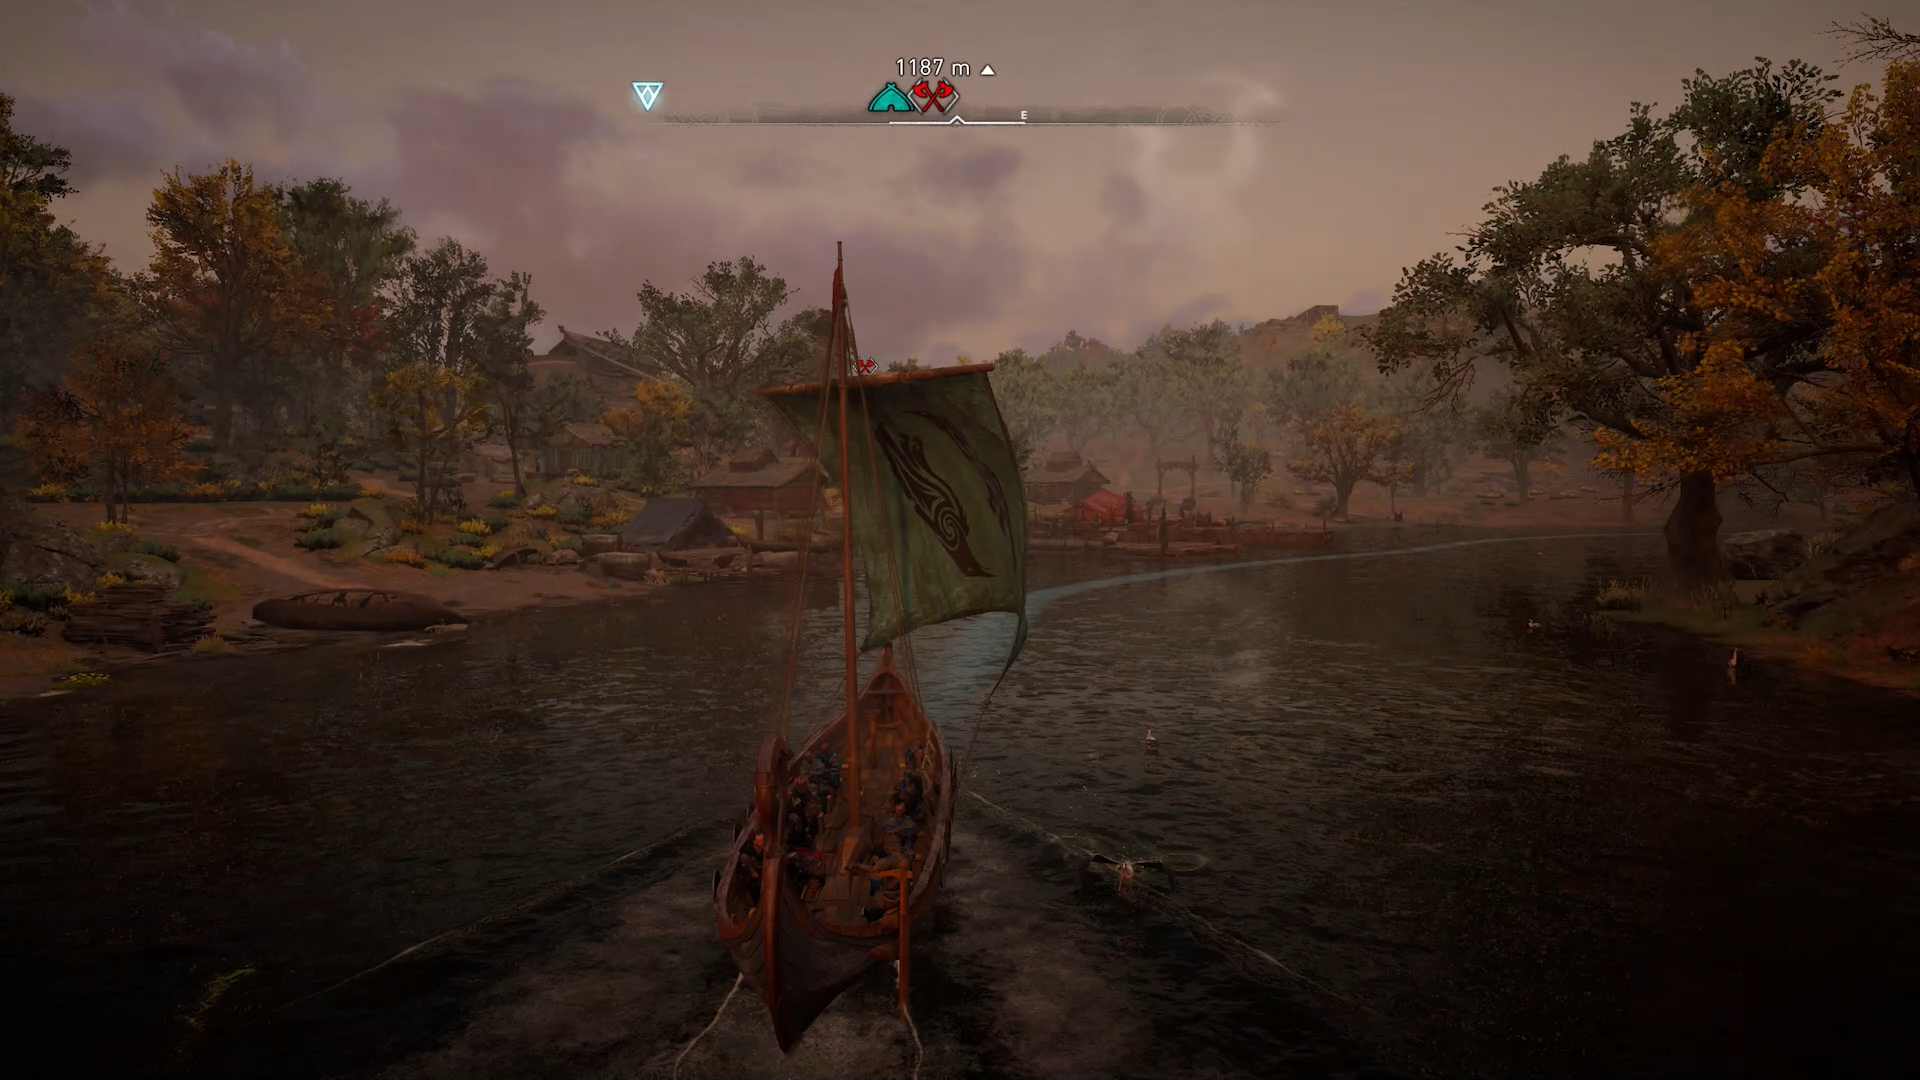 A screenshot showing automatic sailing in Assassins Creed Valhalla.